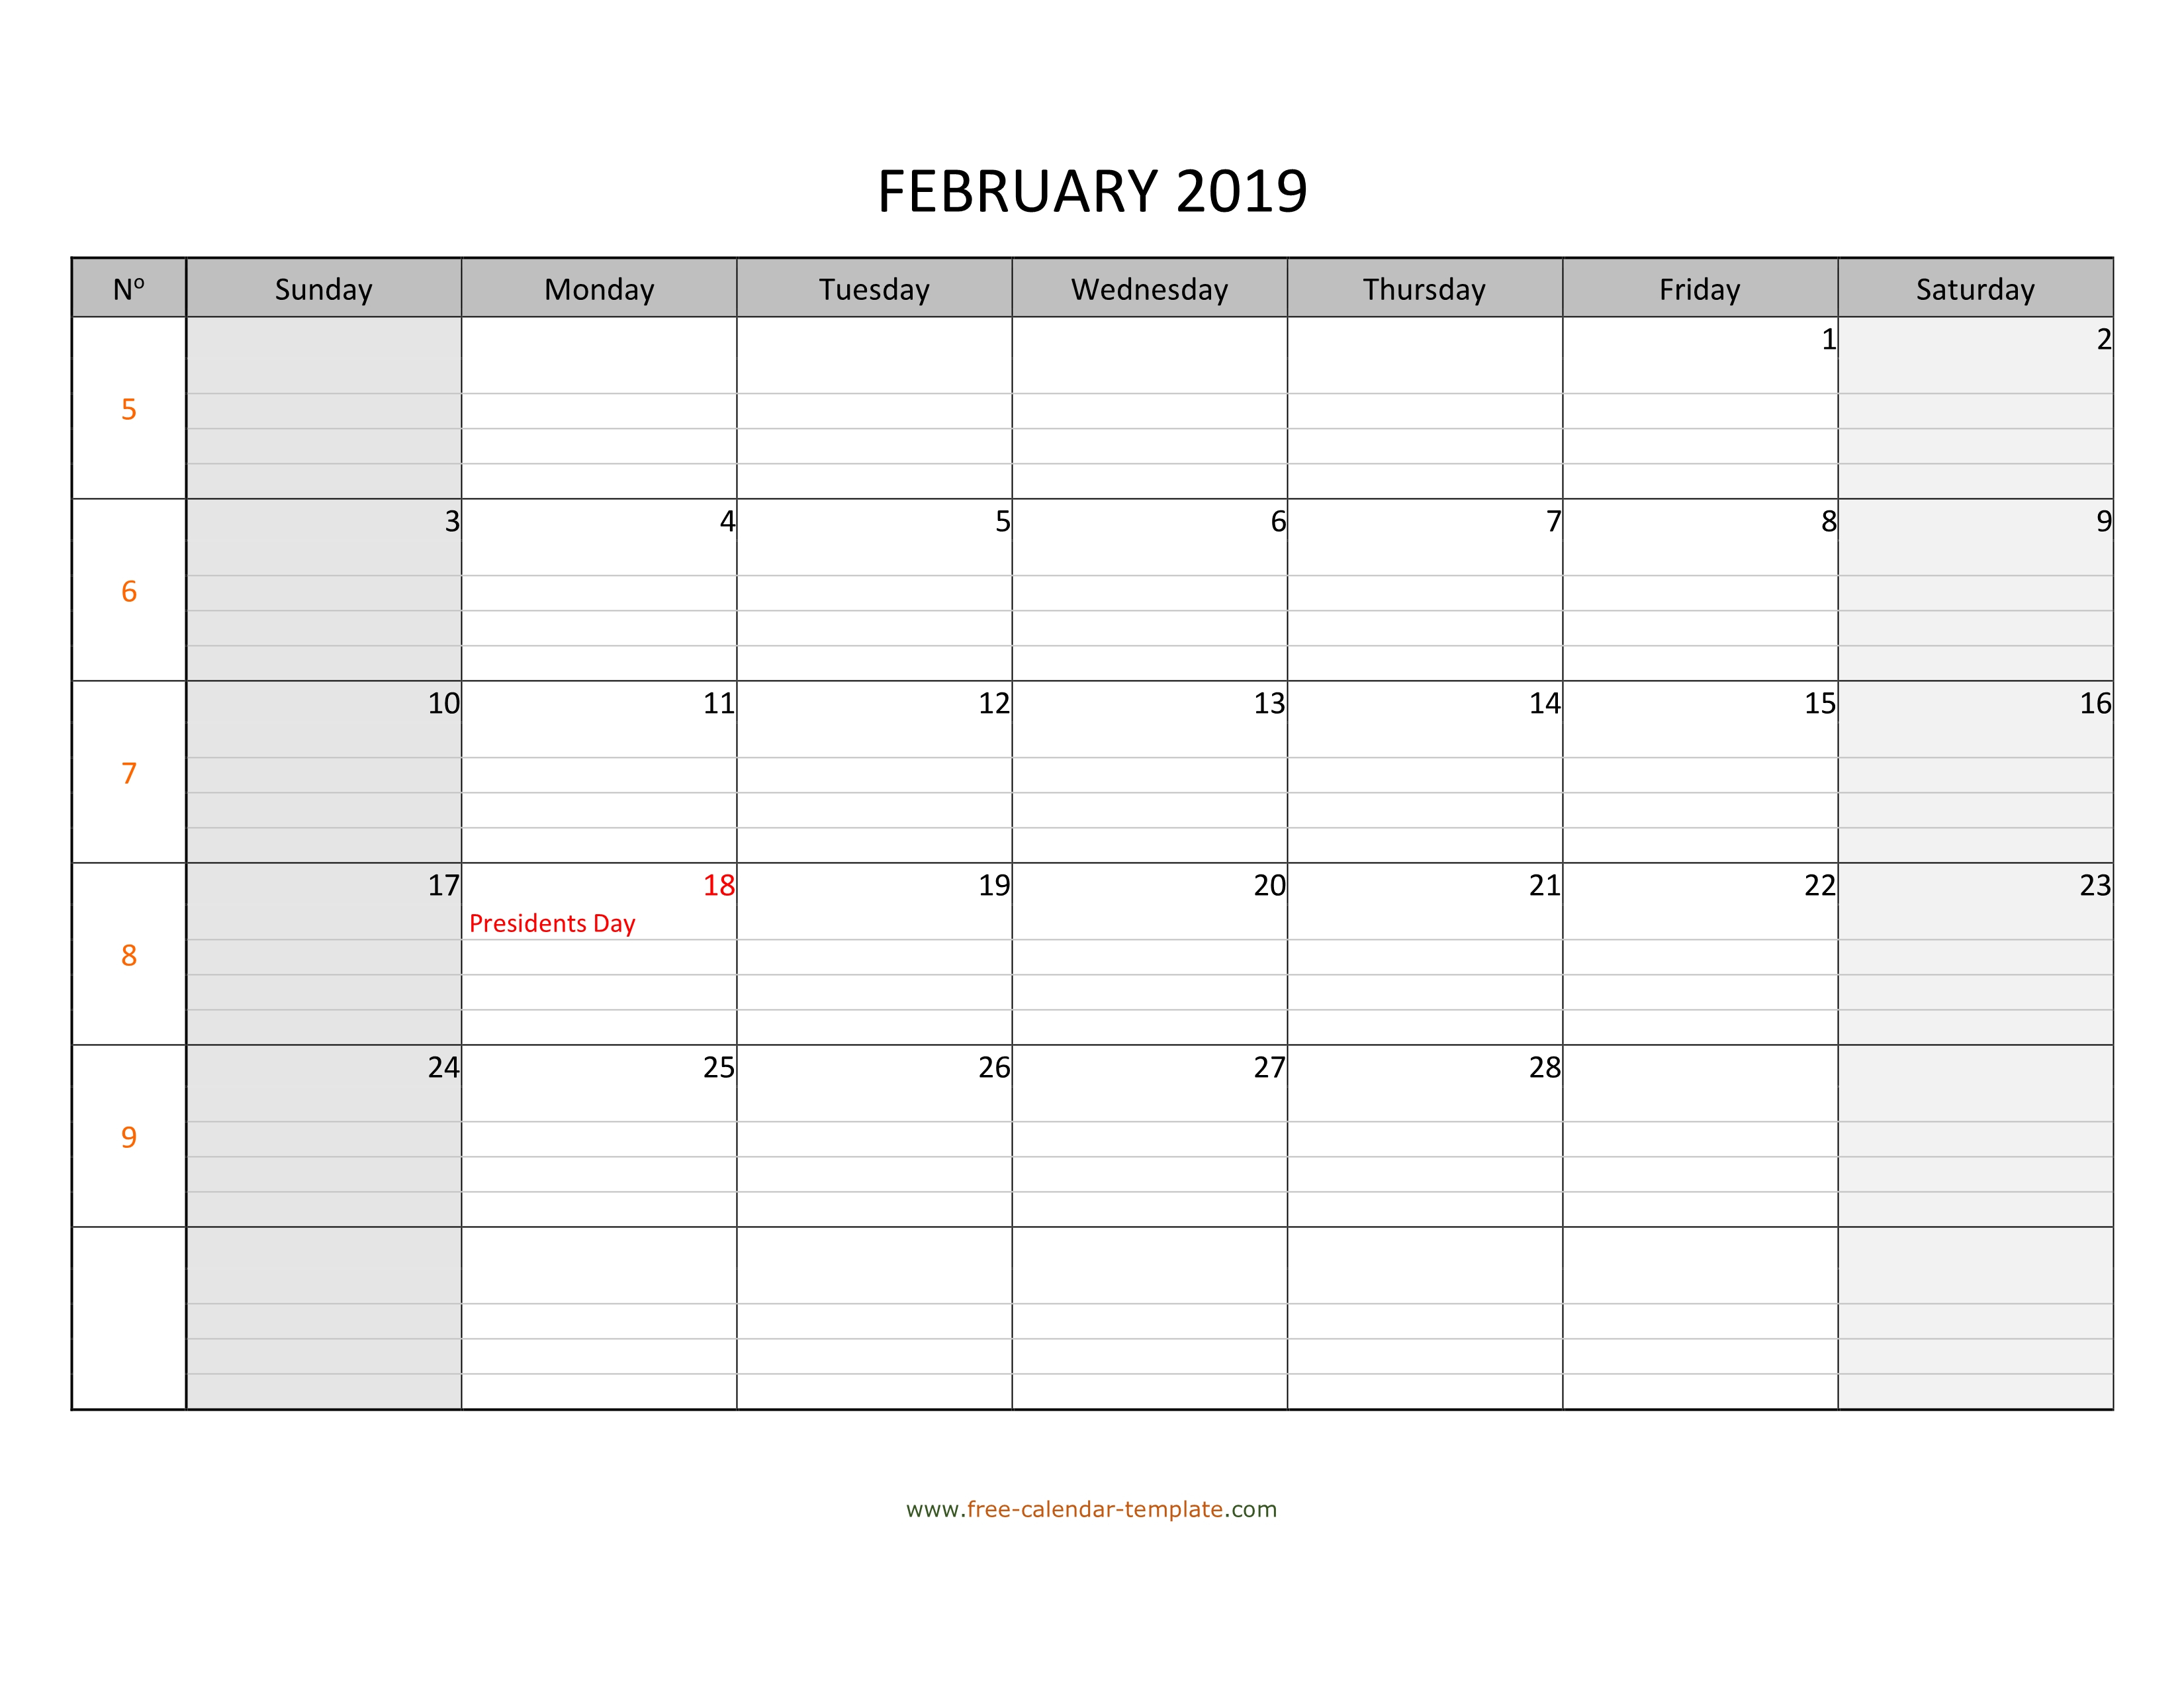 February 2019 Calendar Free Printable With Grid Lines